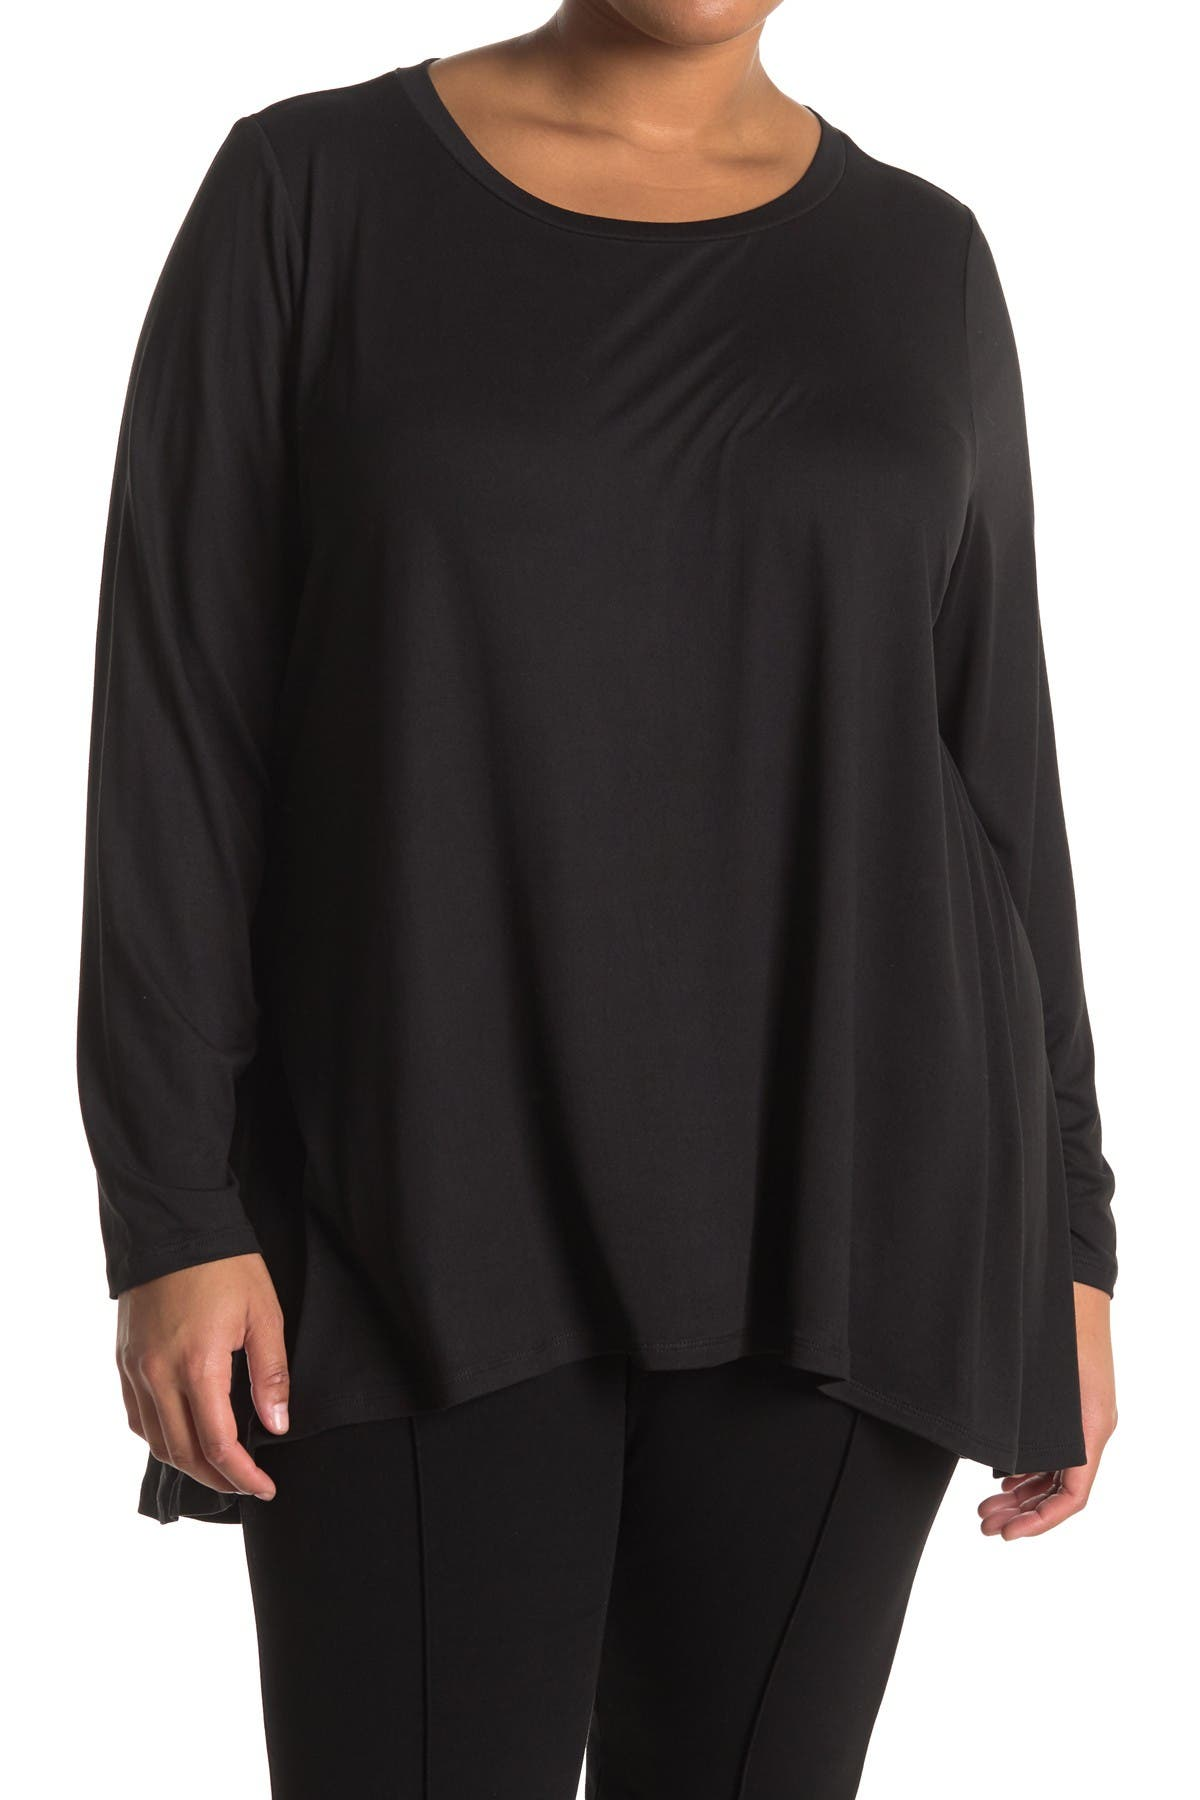 Image of Bobeau Pleat Back High/Low Butter Knit Top